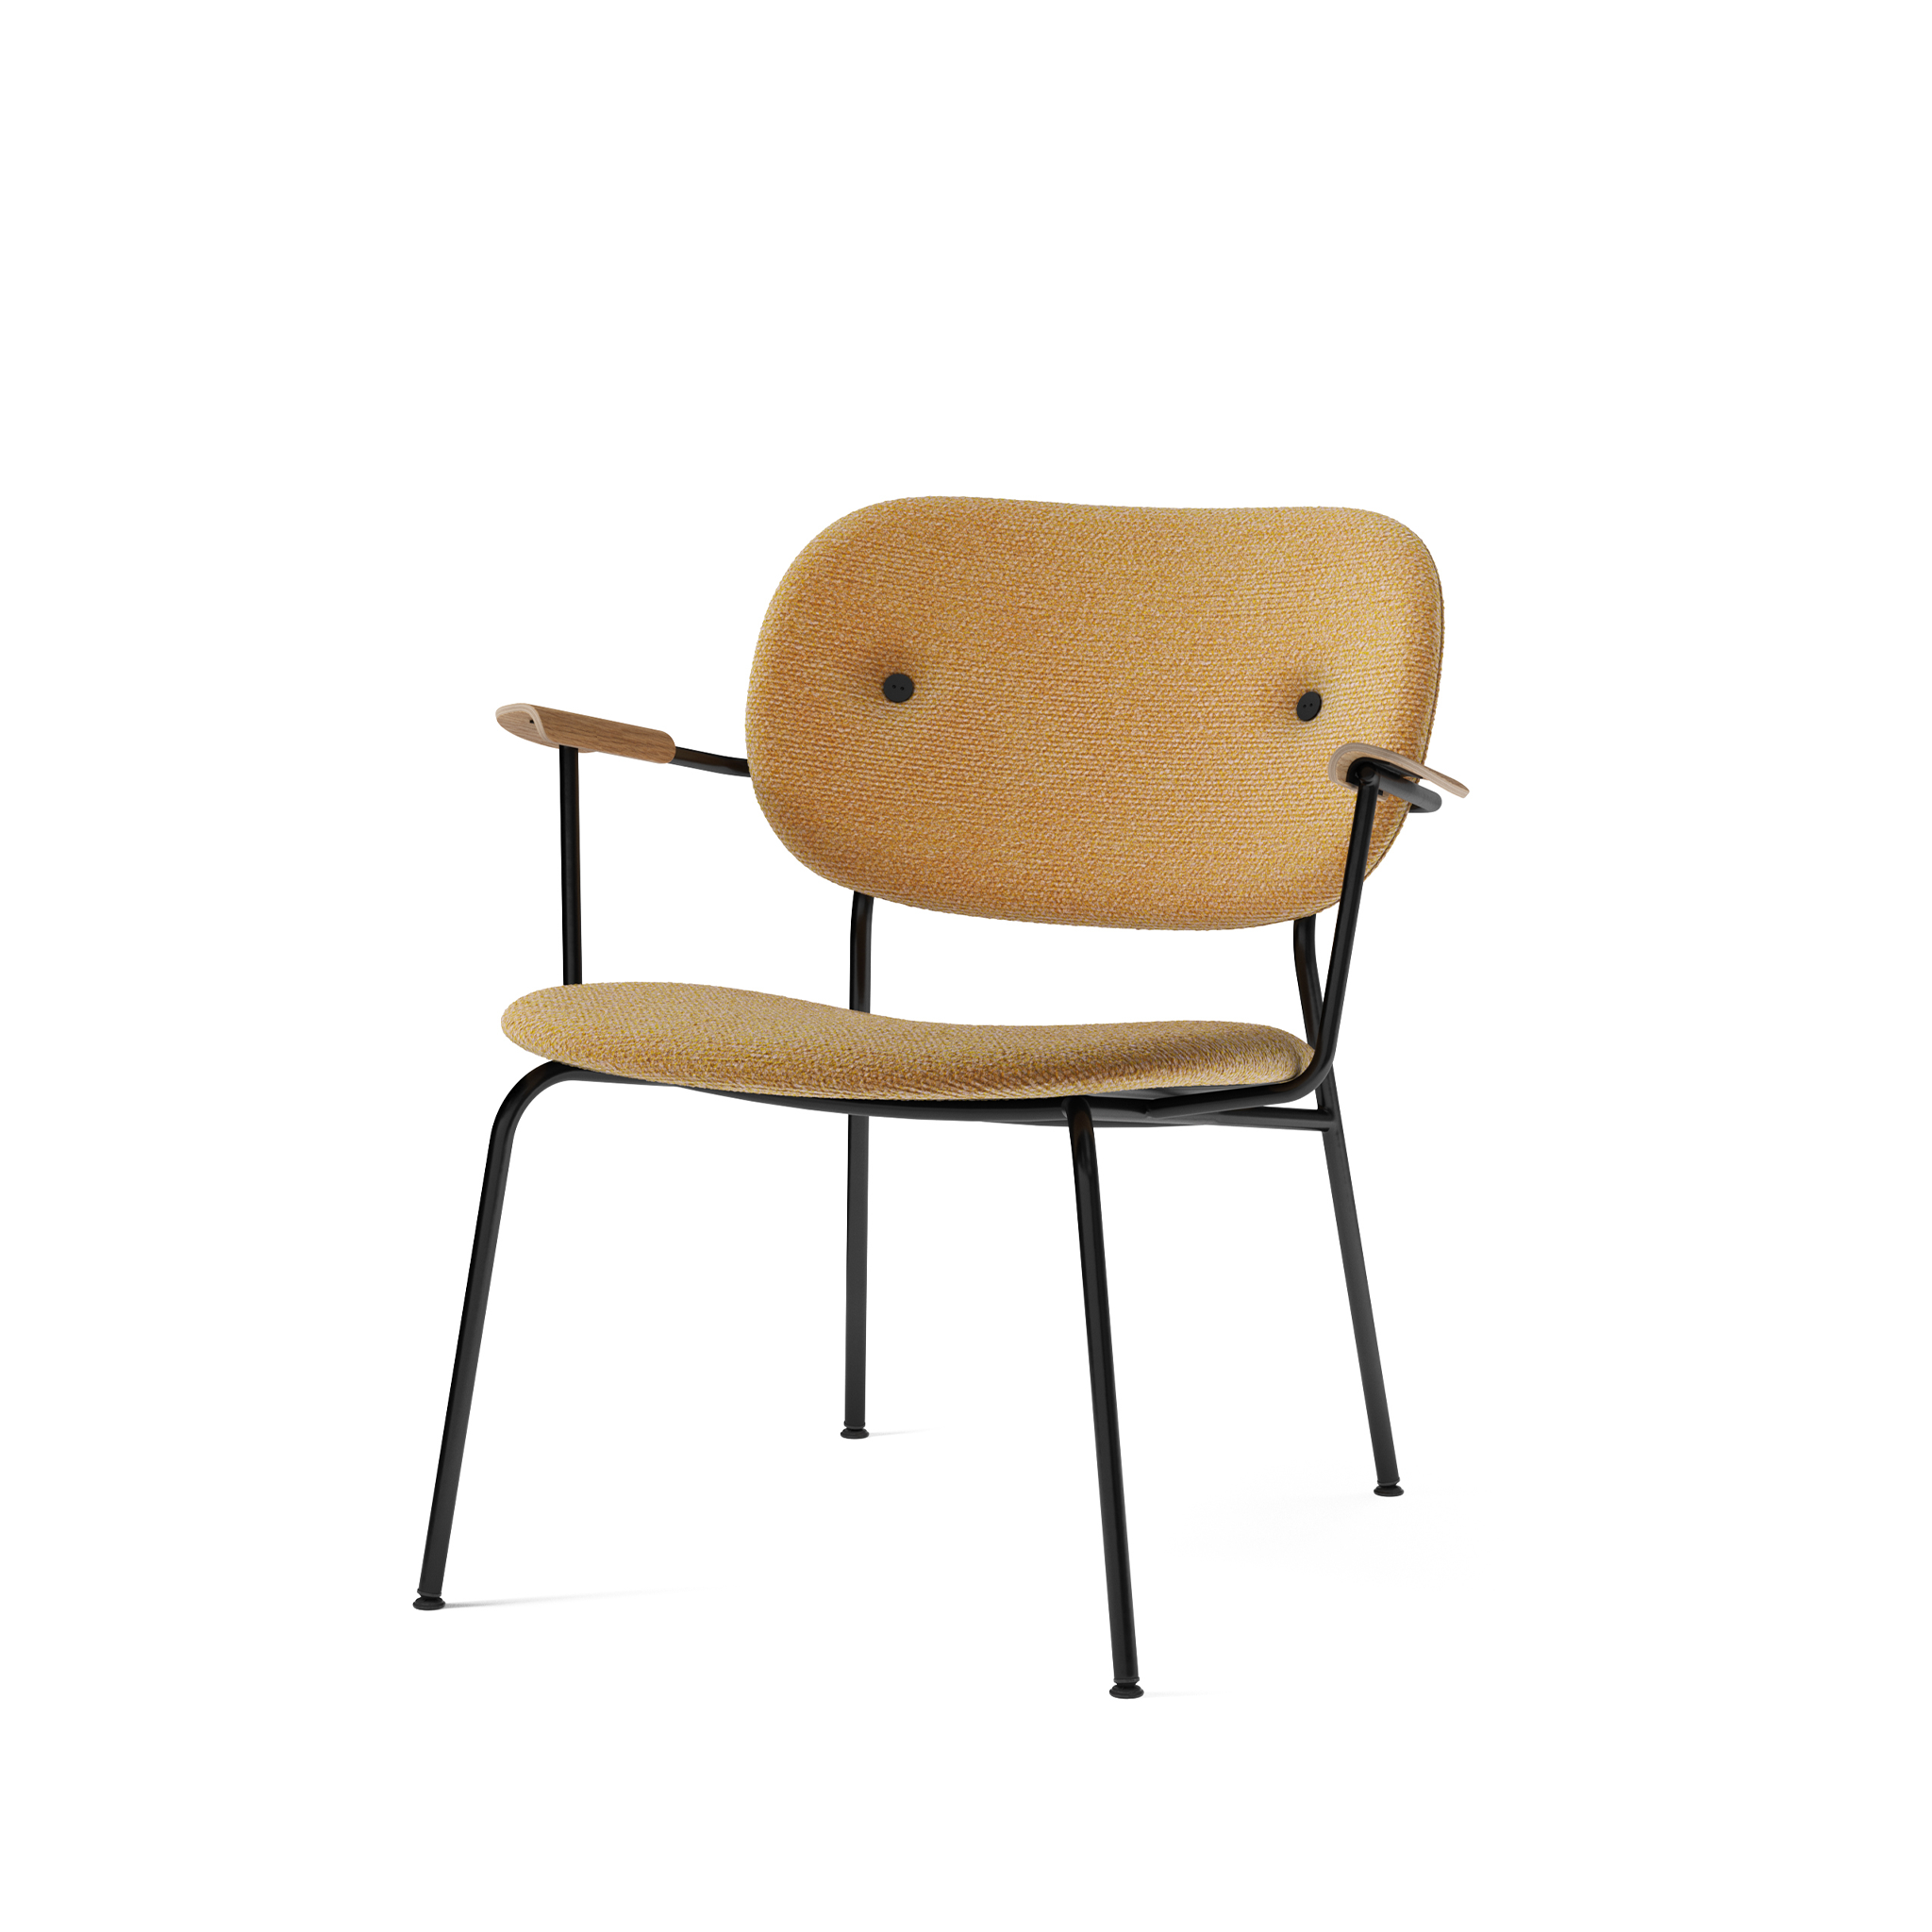 Co Lounge Chair by Norm Architects & Els Van Hoorebeeck for Menu